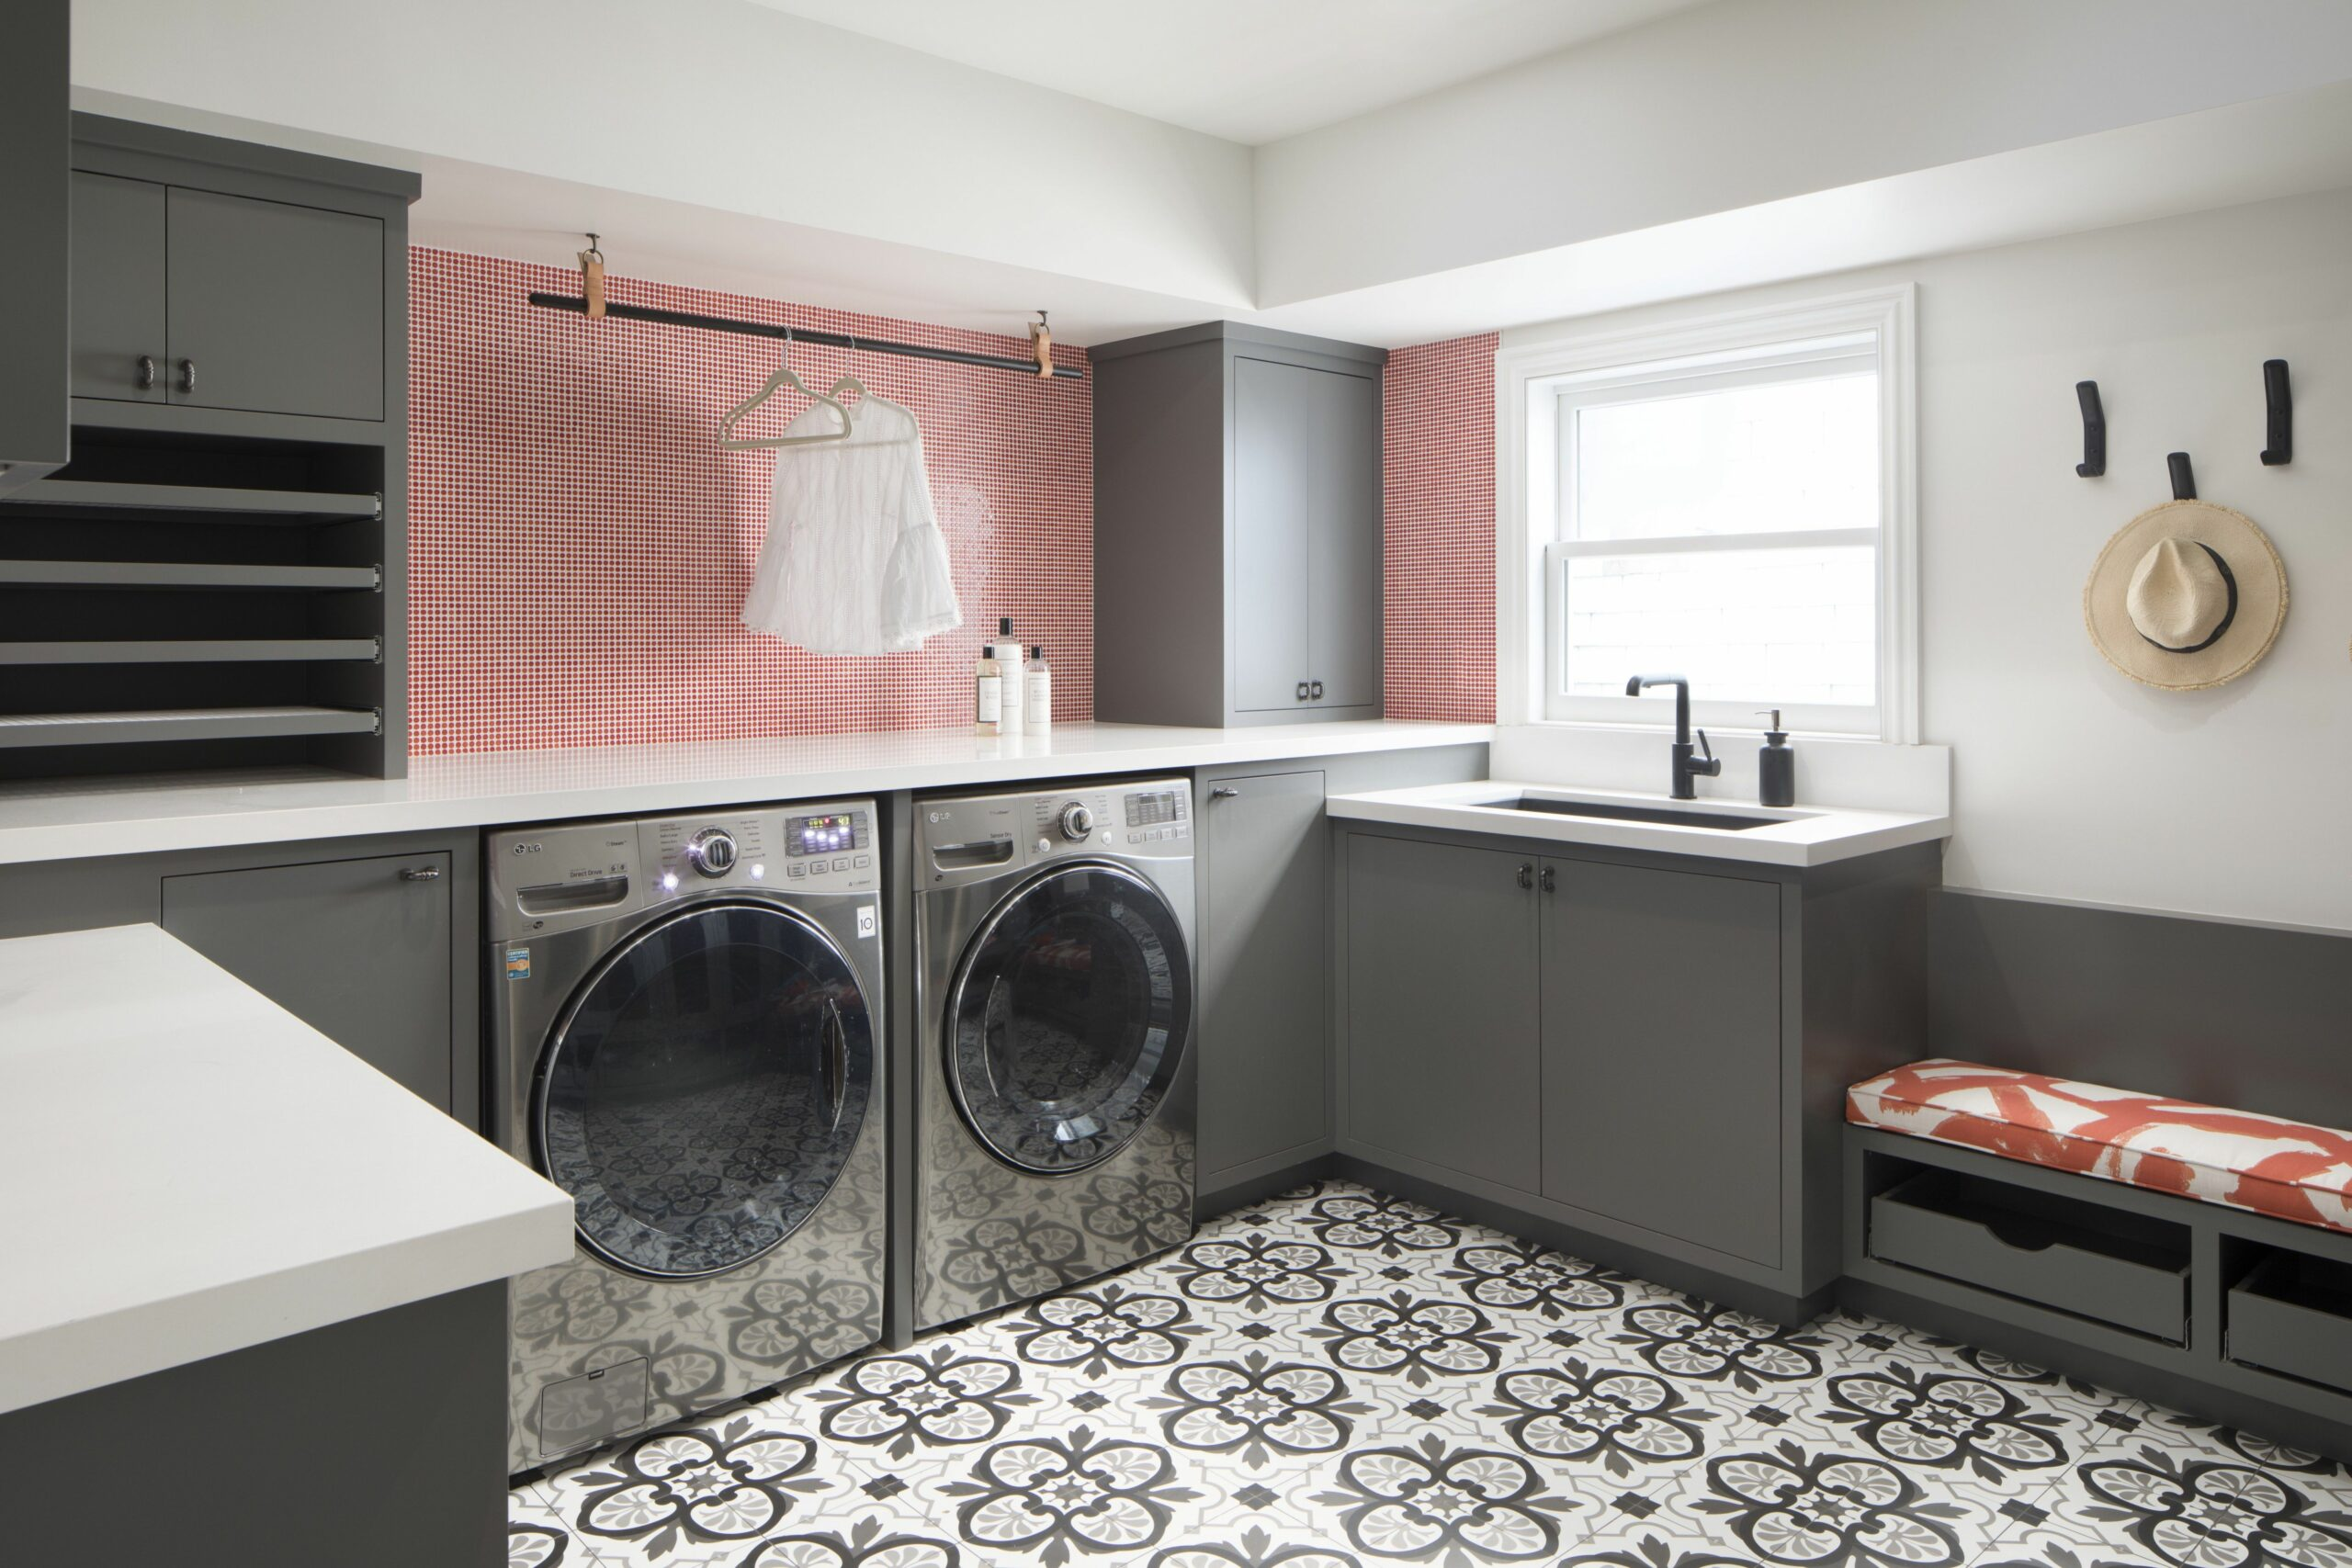 8 Best Laundry Rooms - Lovely & Functional Laundry Room Ideas - elegant laundry room ideas